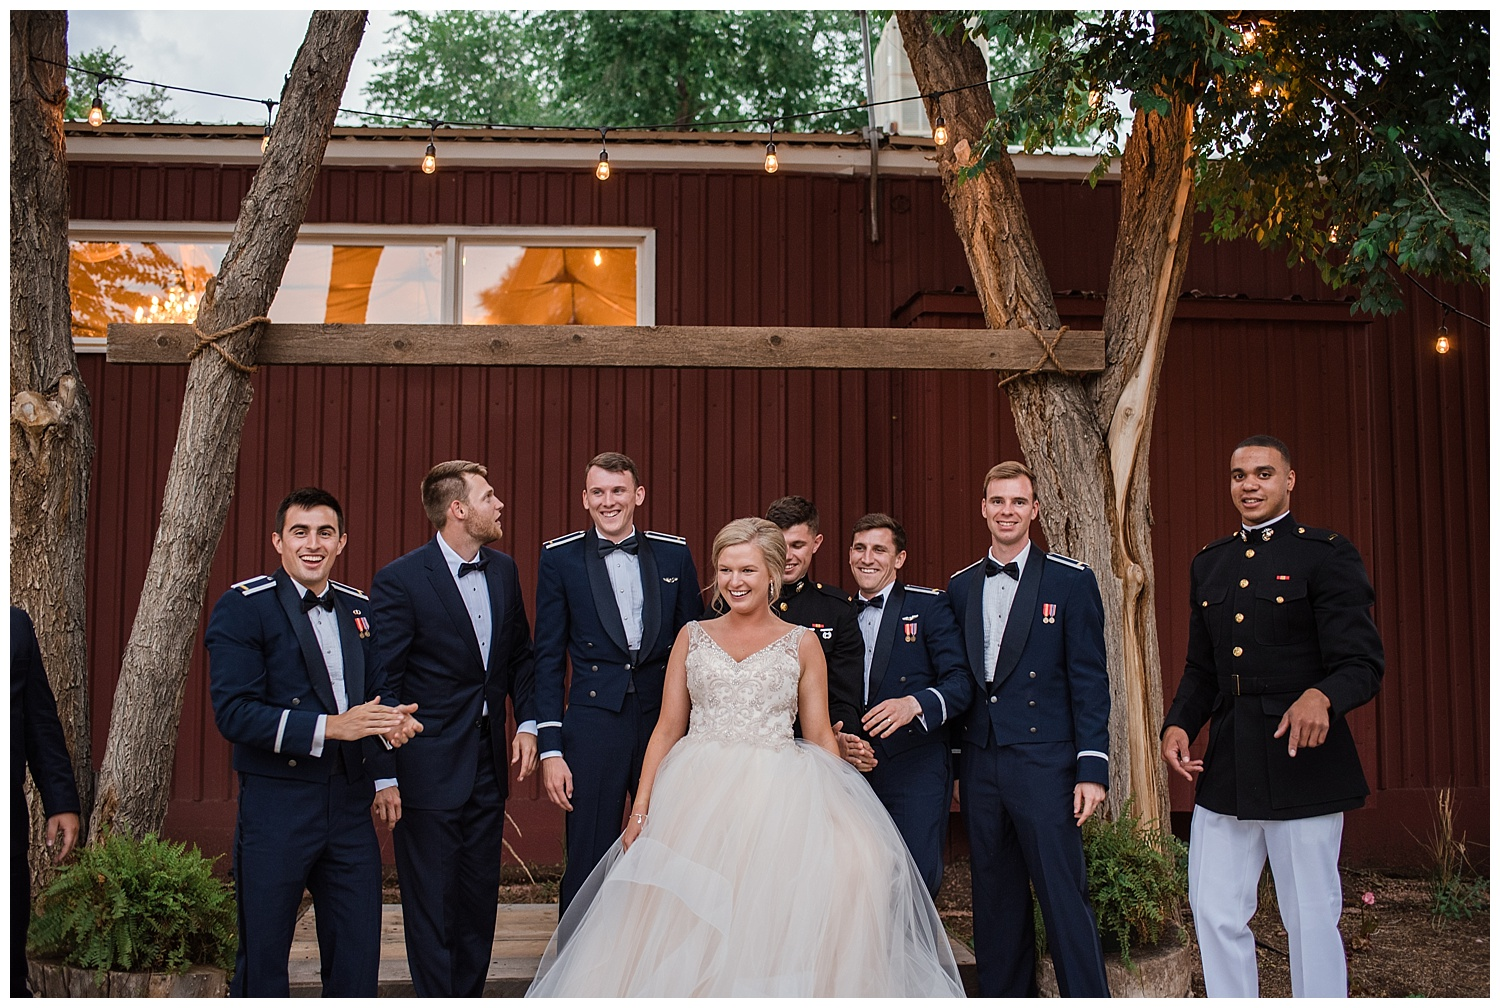 Military Wedding, bride and her groomsmen smiling, bridal party, dress blues, groomsmen, bridesmaids, dress blues, Colorado Wedding Photographer, Denver Wedding Photographer, Denver Elopement Photographer, Colorado Elopement Photographer, Rocky Mountain Wedding Photographer, Downtown Denver Photographer, colorado springs wedding photographer